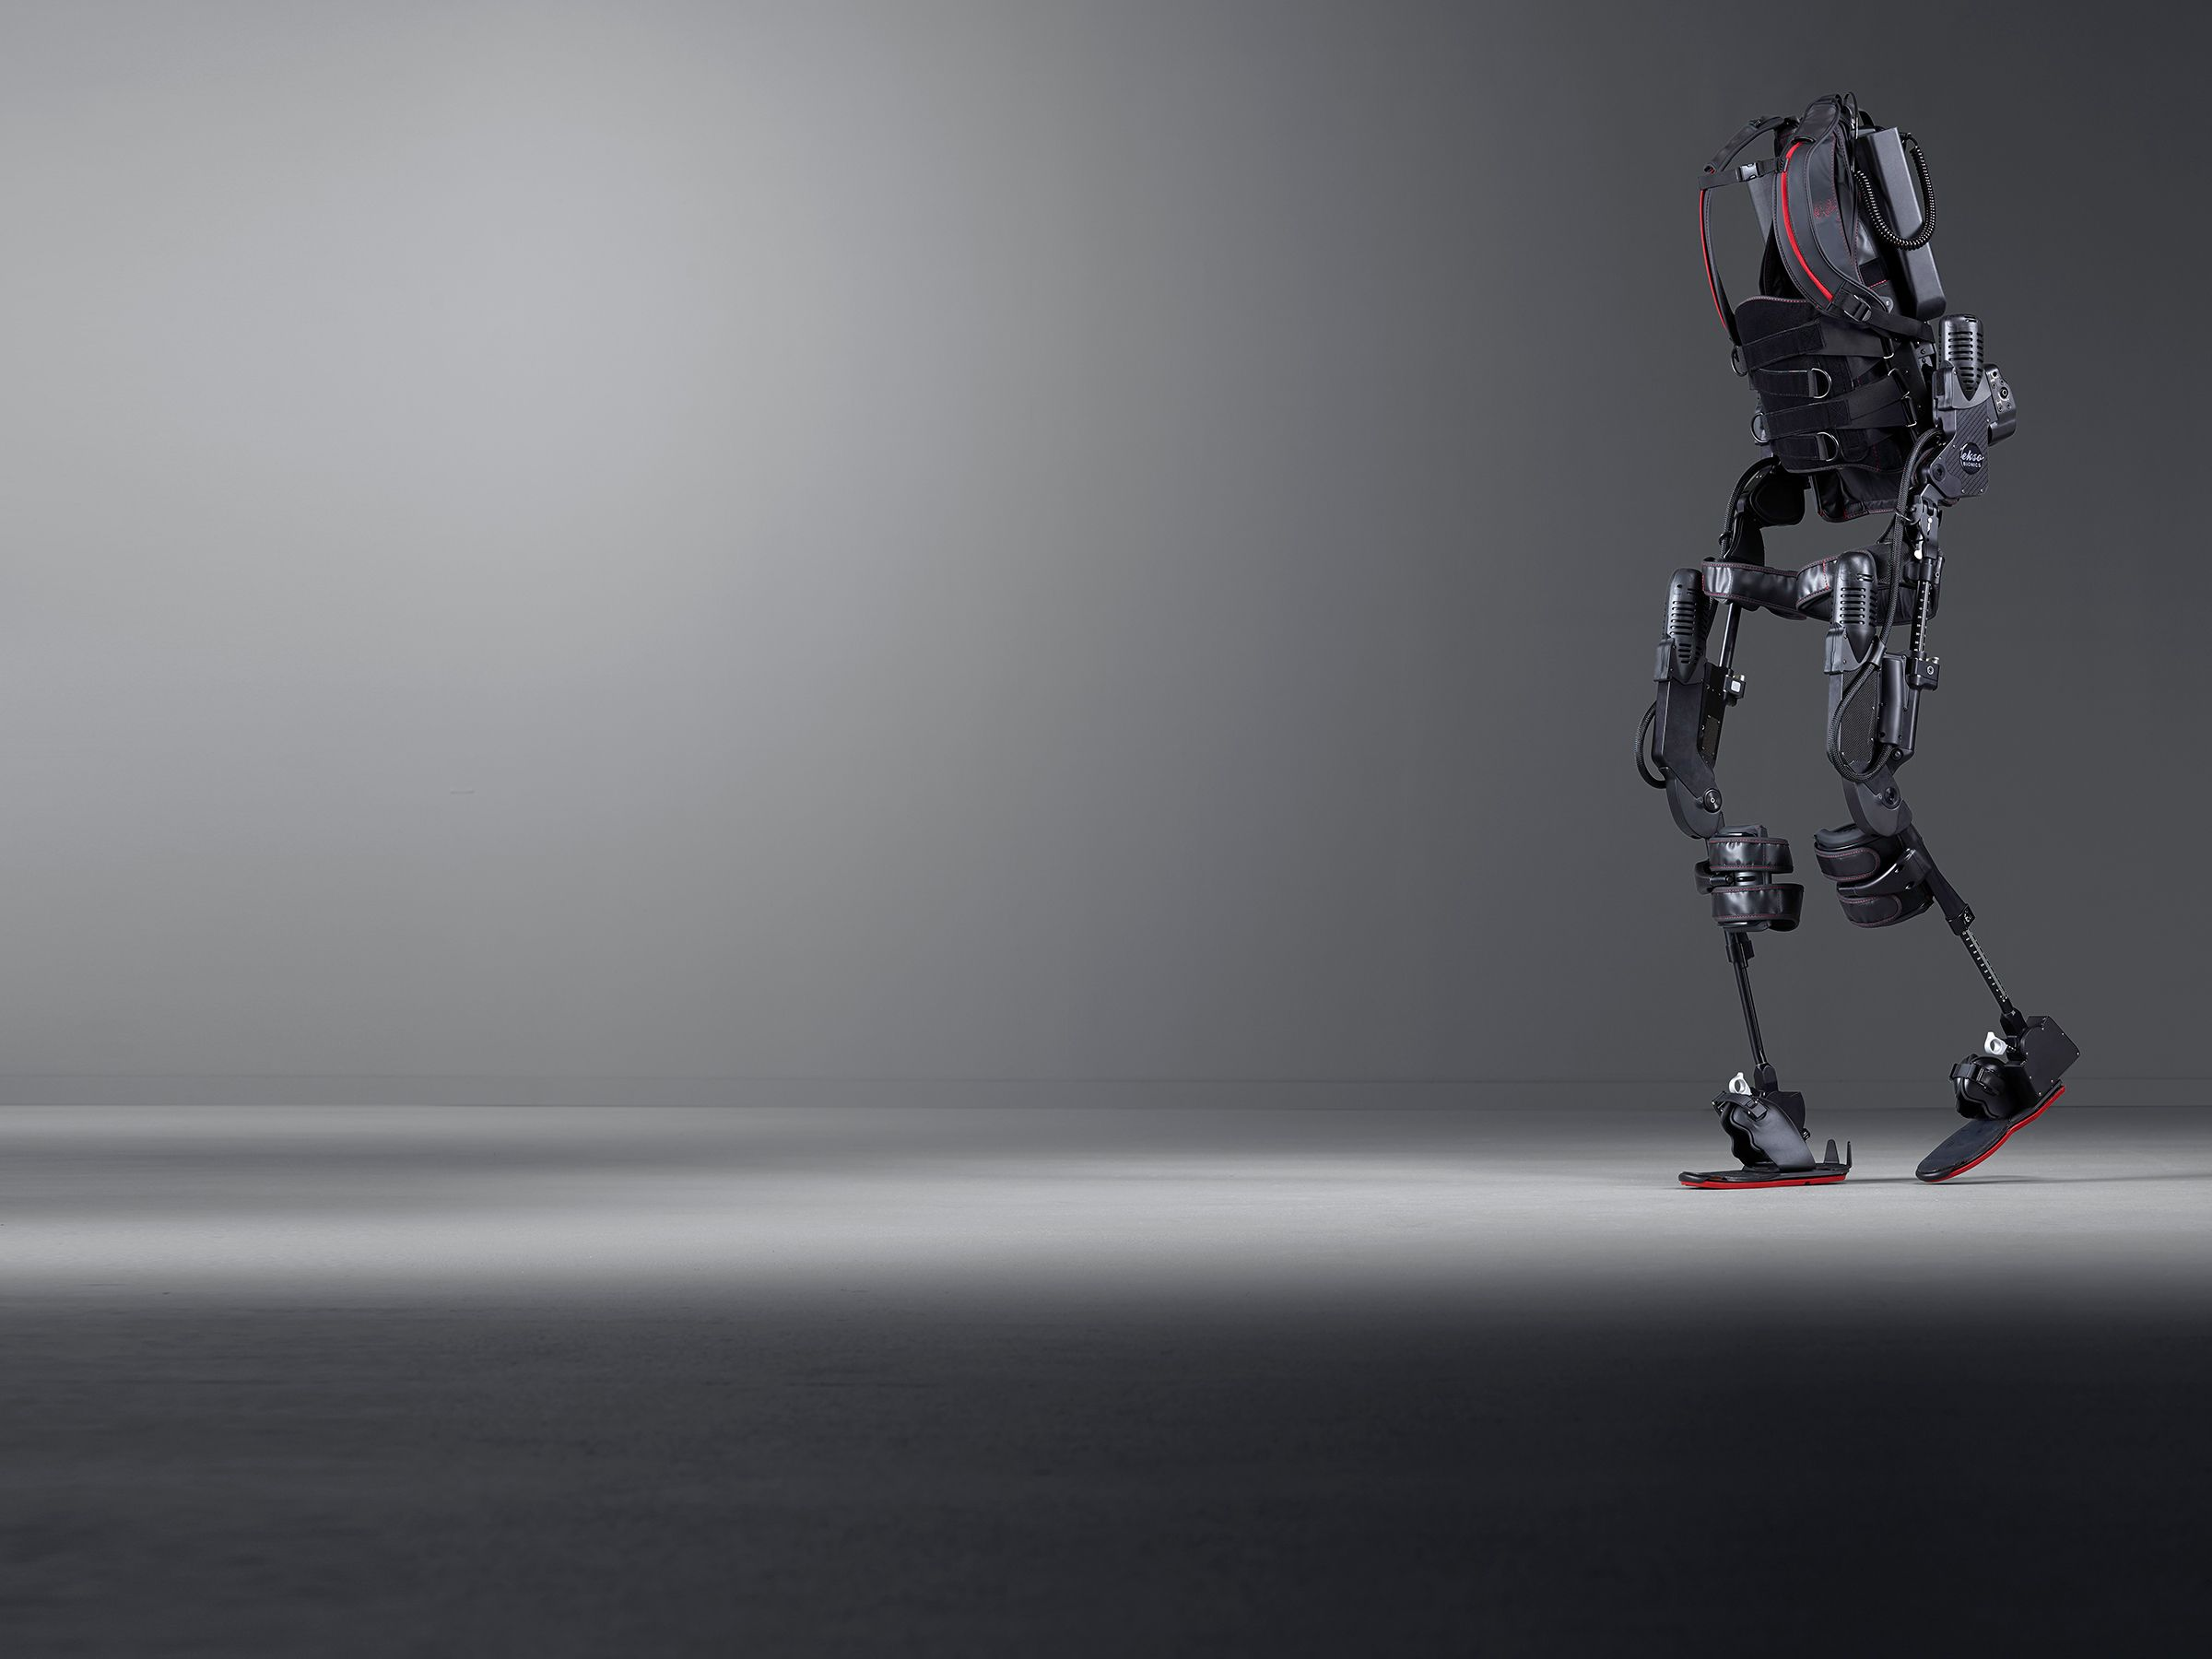 When you think of bionic exoskeleton suits images of futuristic